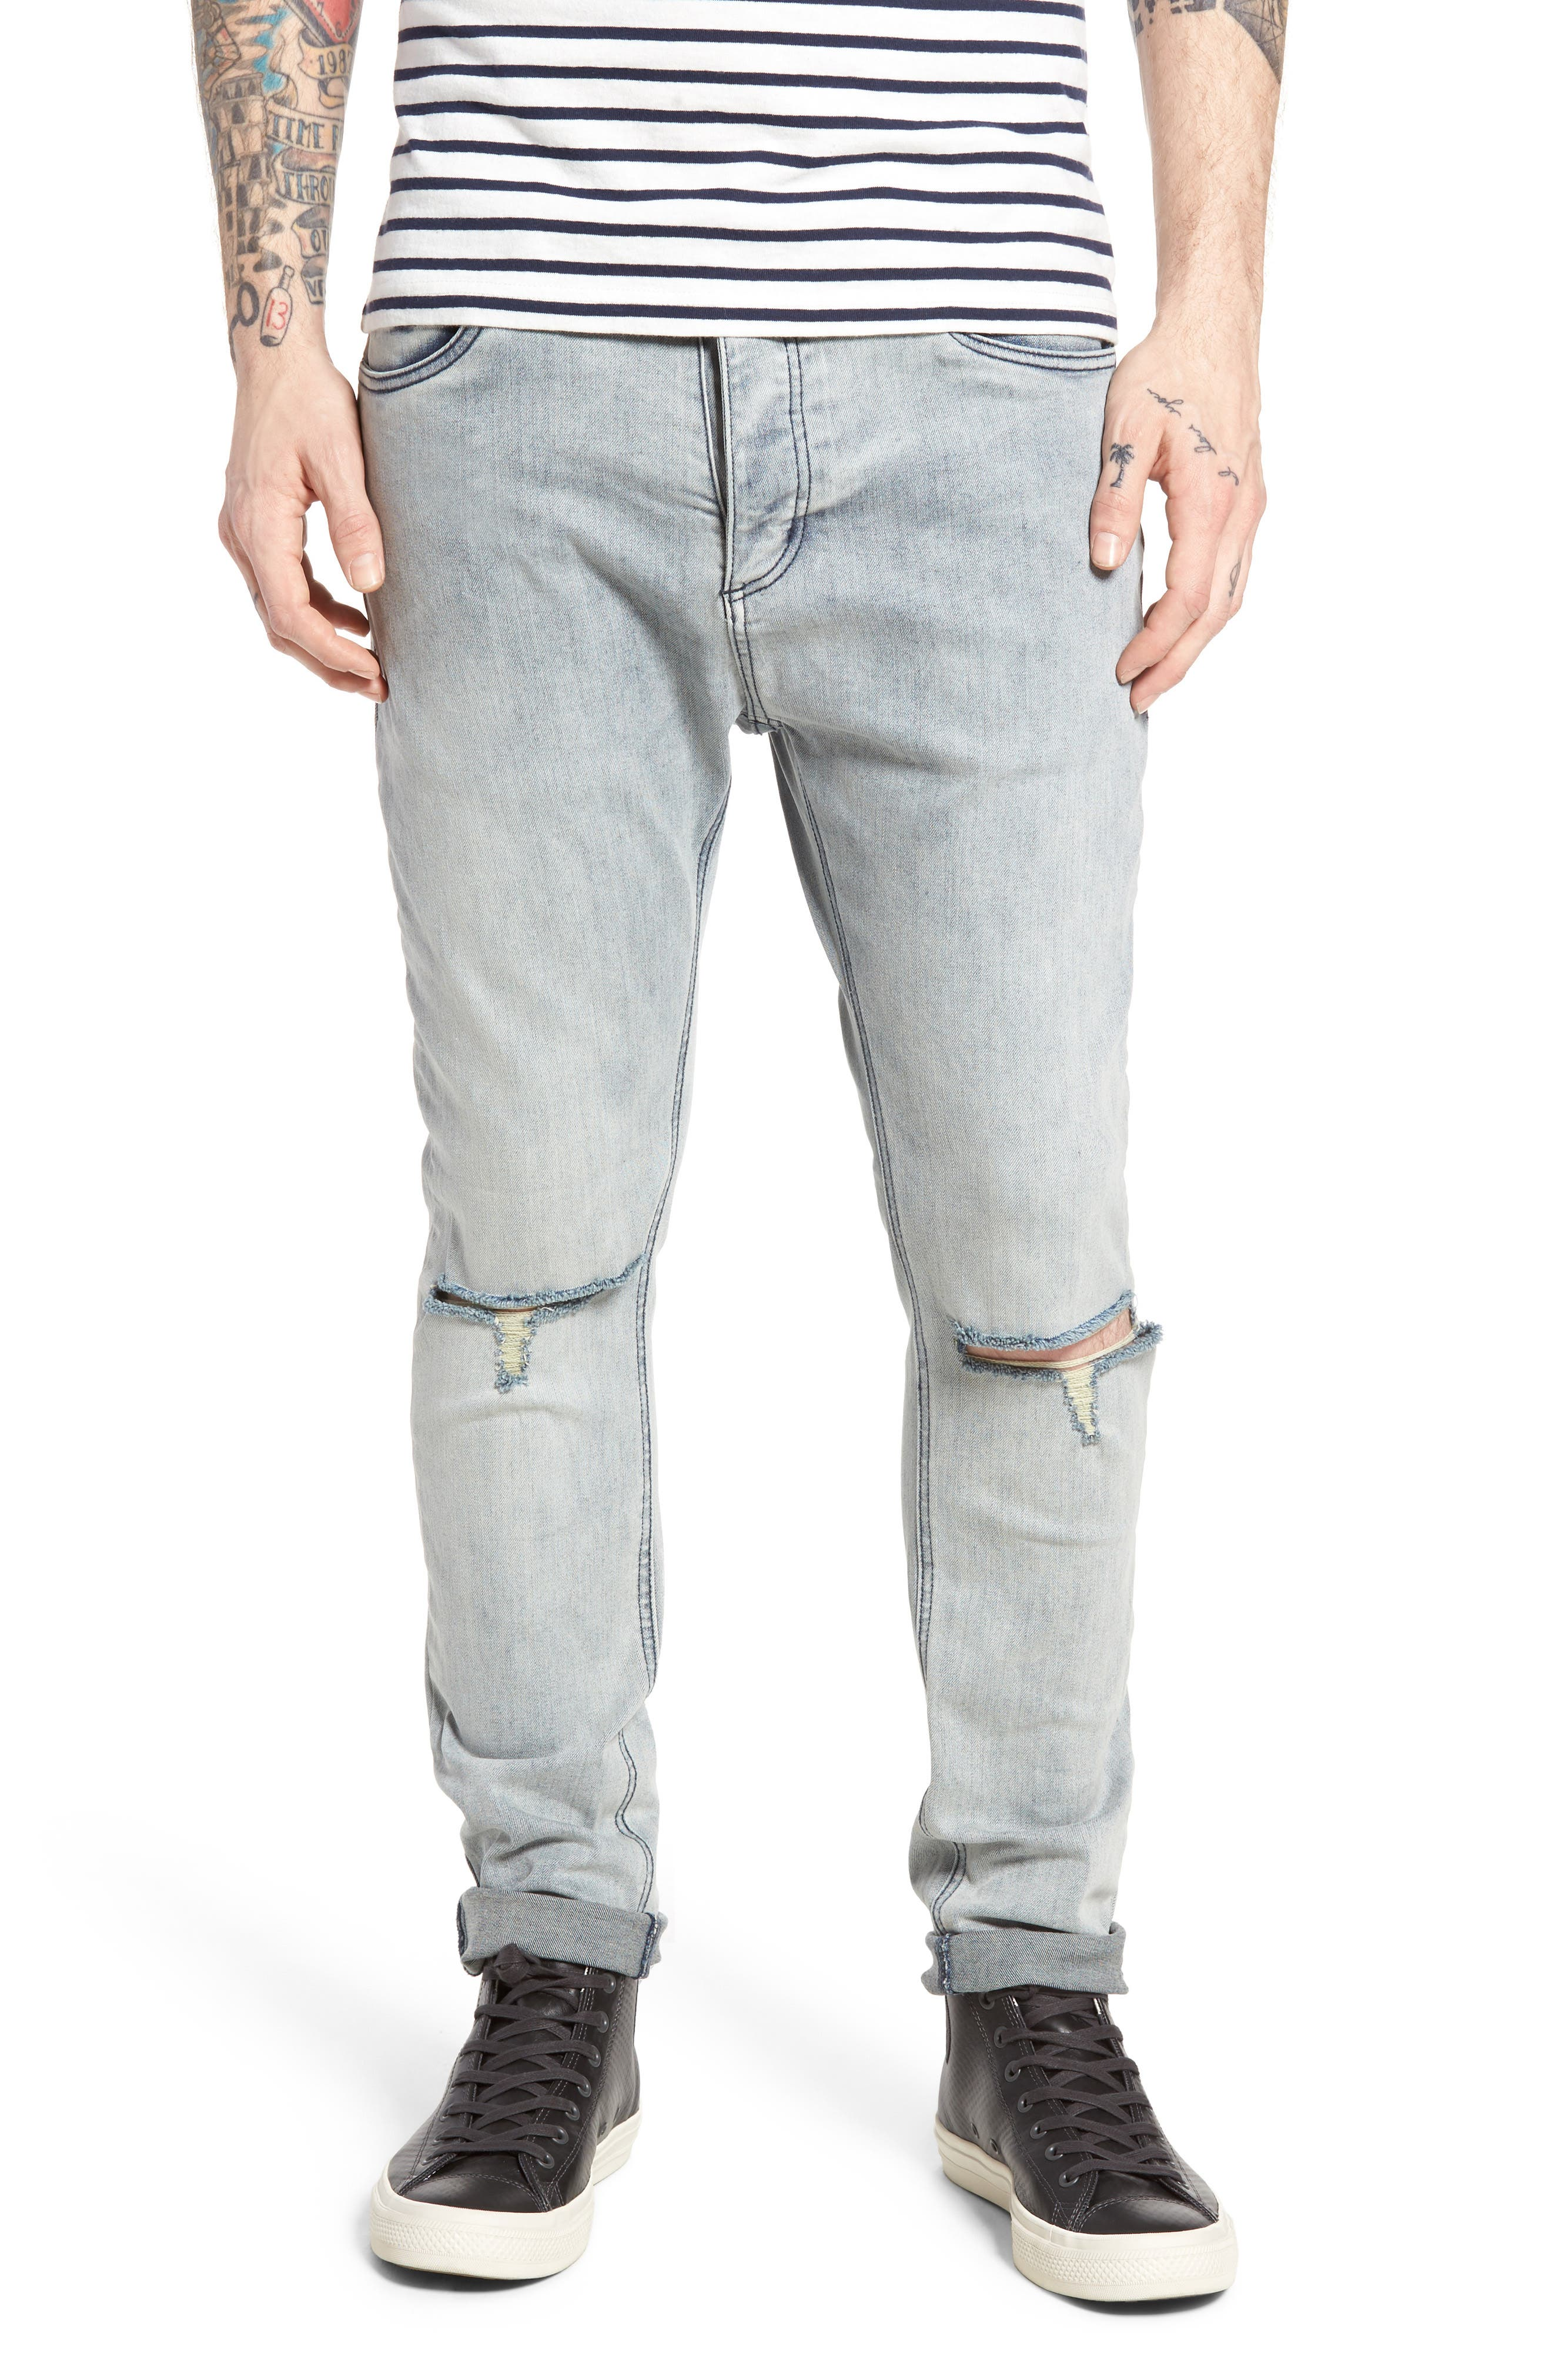 Joe Blow Destroyed Denim Jeans,                             Main thumbnail 1, color,                             459